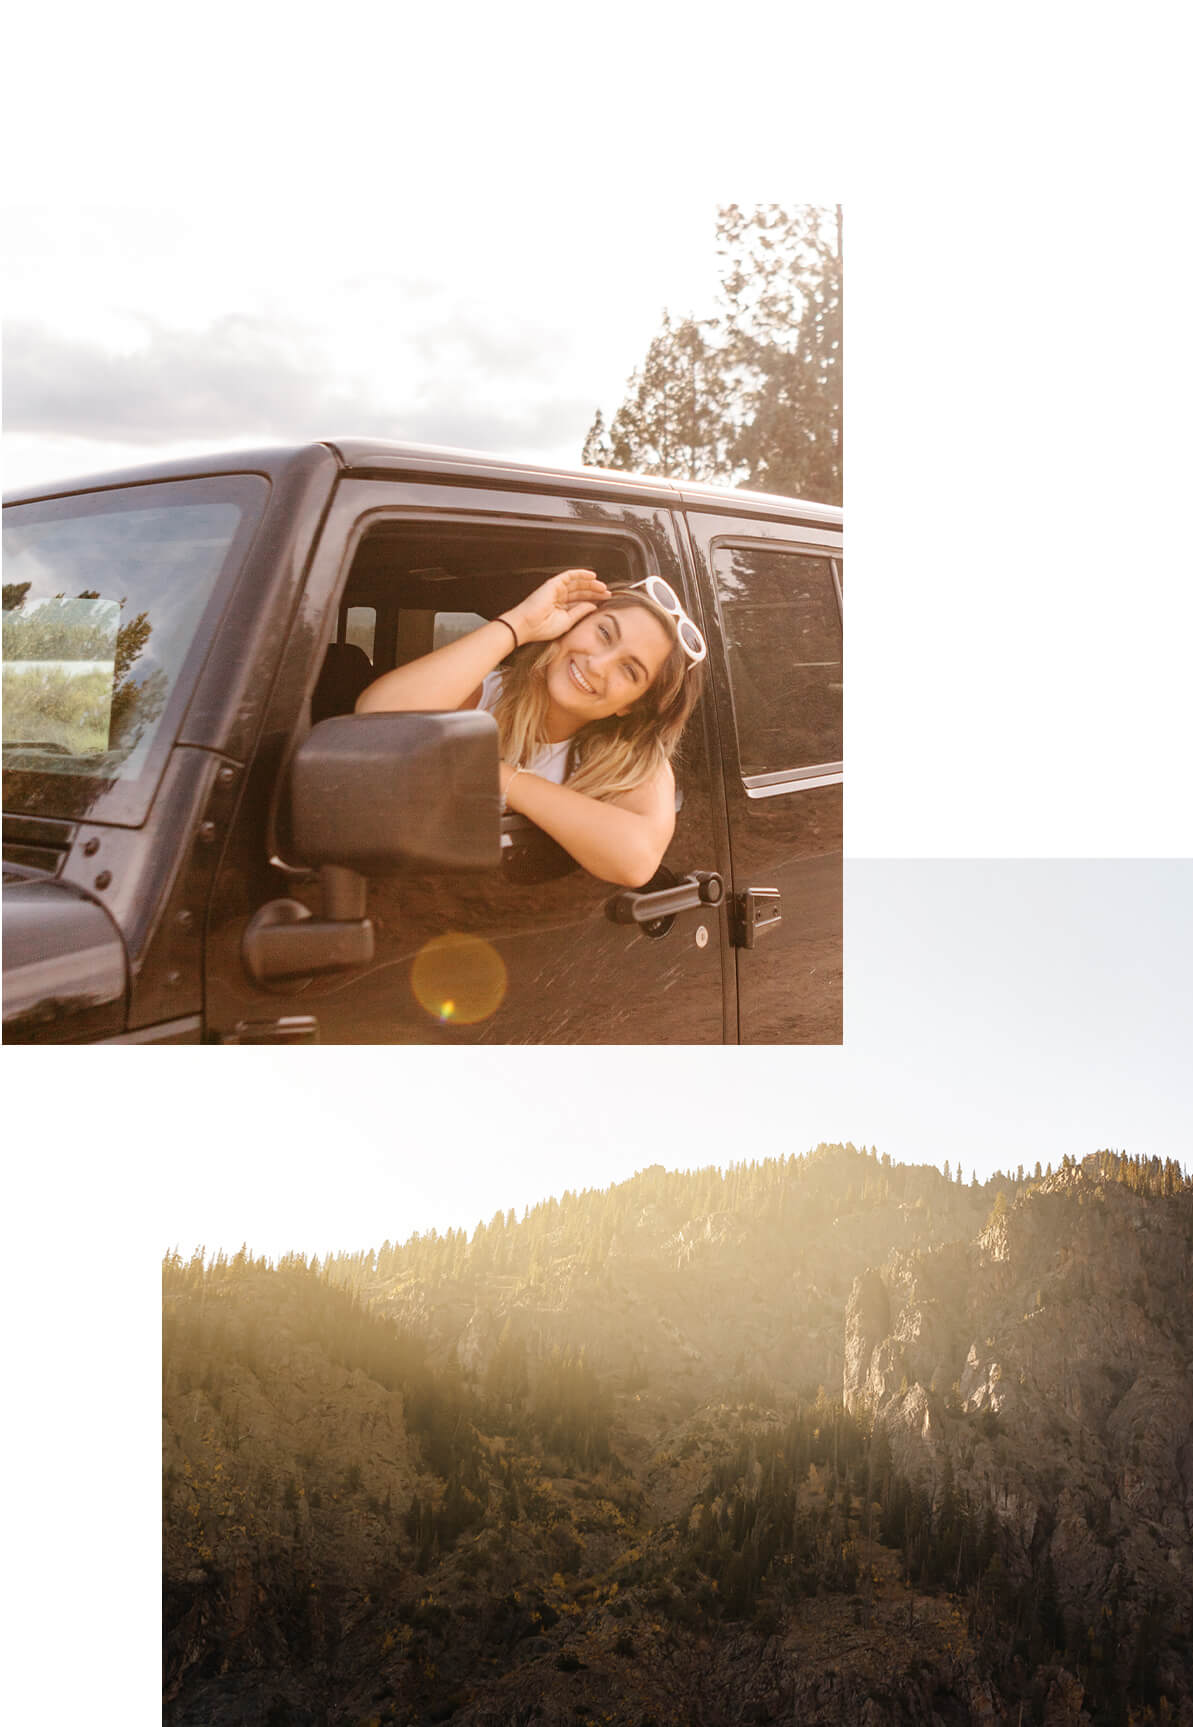 Two photos by Brandon Lopez of girl peaking head out of jeep window and pine-clad rocky hills